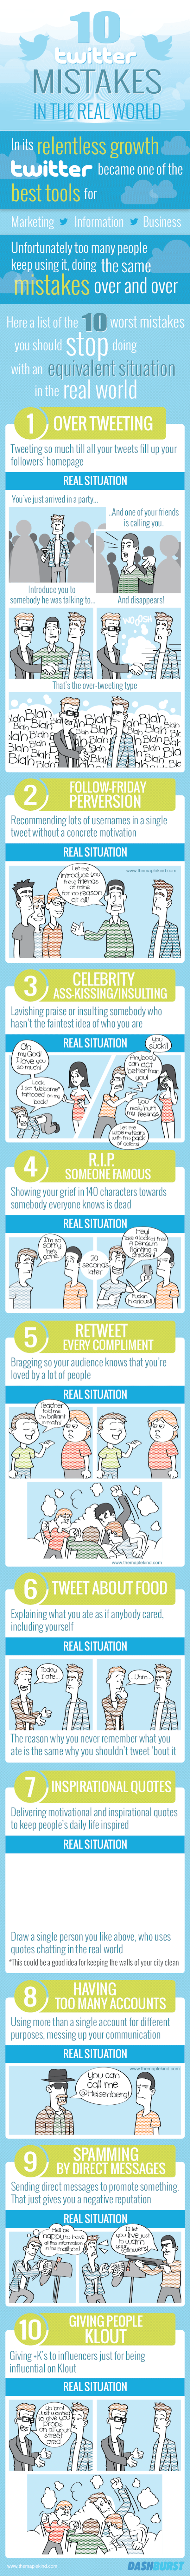 Delight Your Customers, Twitter Mistakes And More - The Social 7